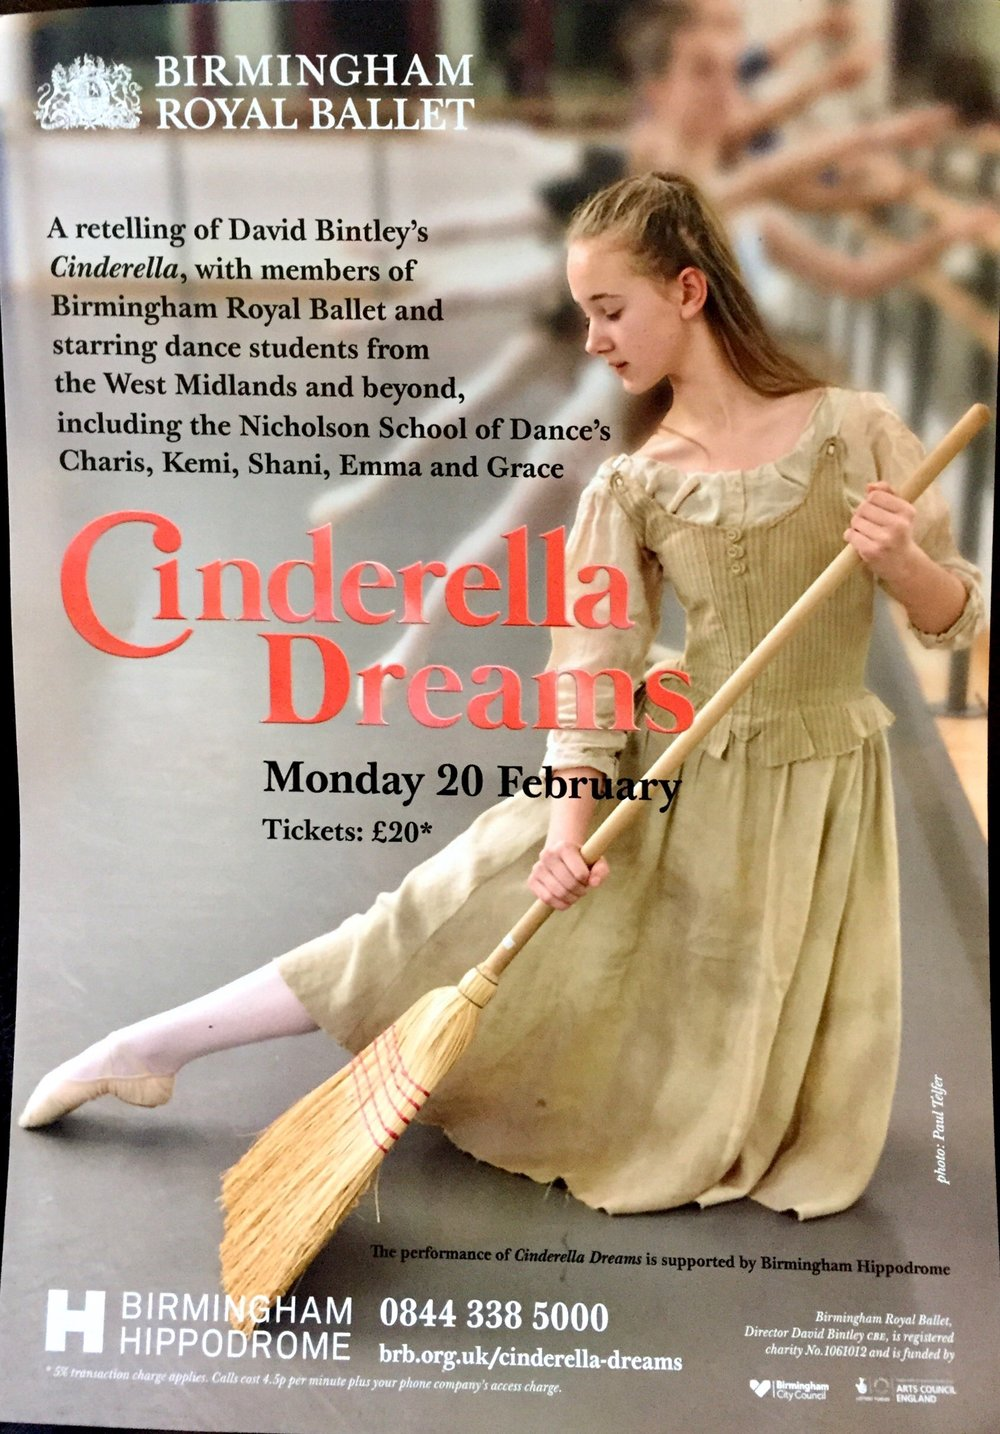 Very much looking forward to watching some of my students dance at the Birmingham Hippodrome on Monday 20th Feb. A wonderful opportunity for them to be involved in such a professional production.